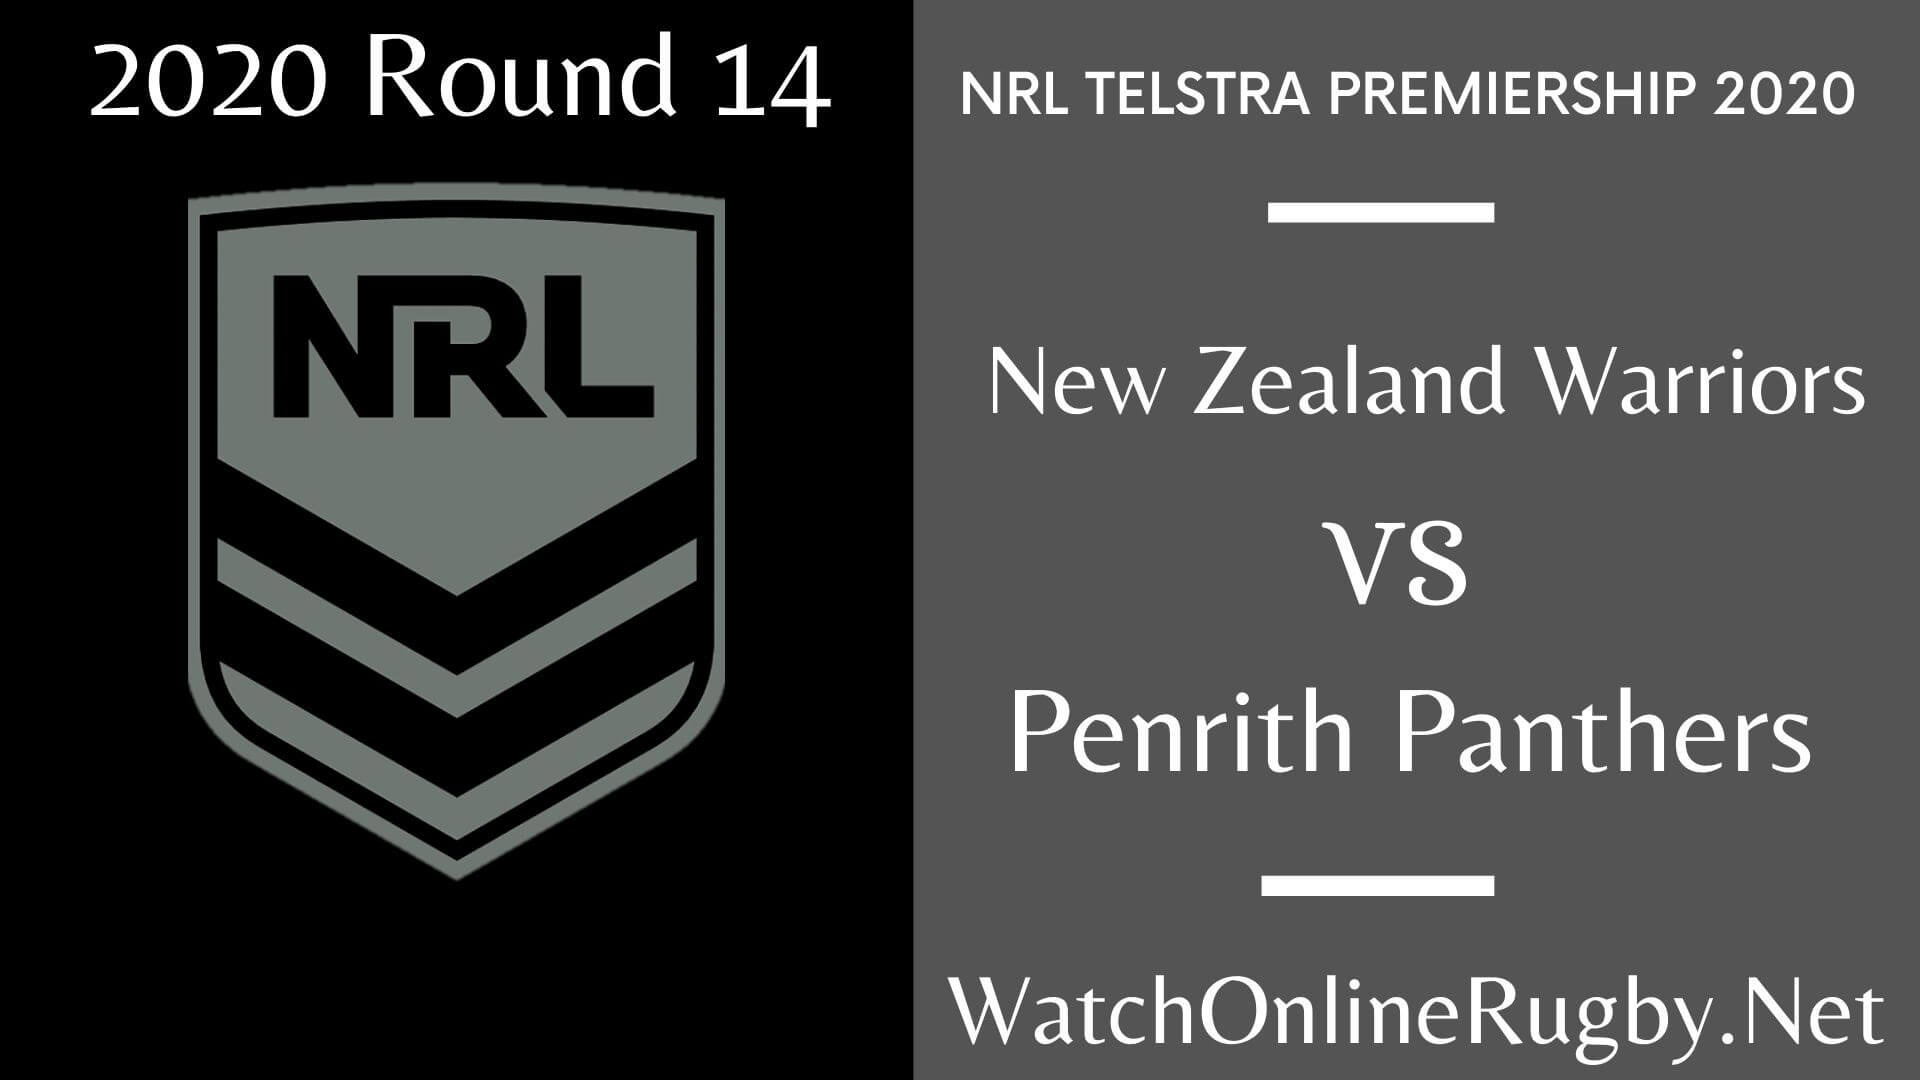 New Zealand Warriors Vs Penrith Panthers Highlights 2020 Round 14 NRL Rugby